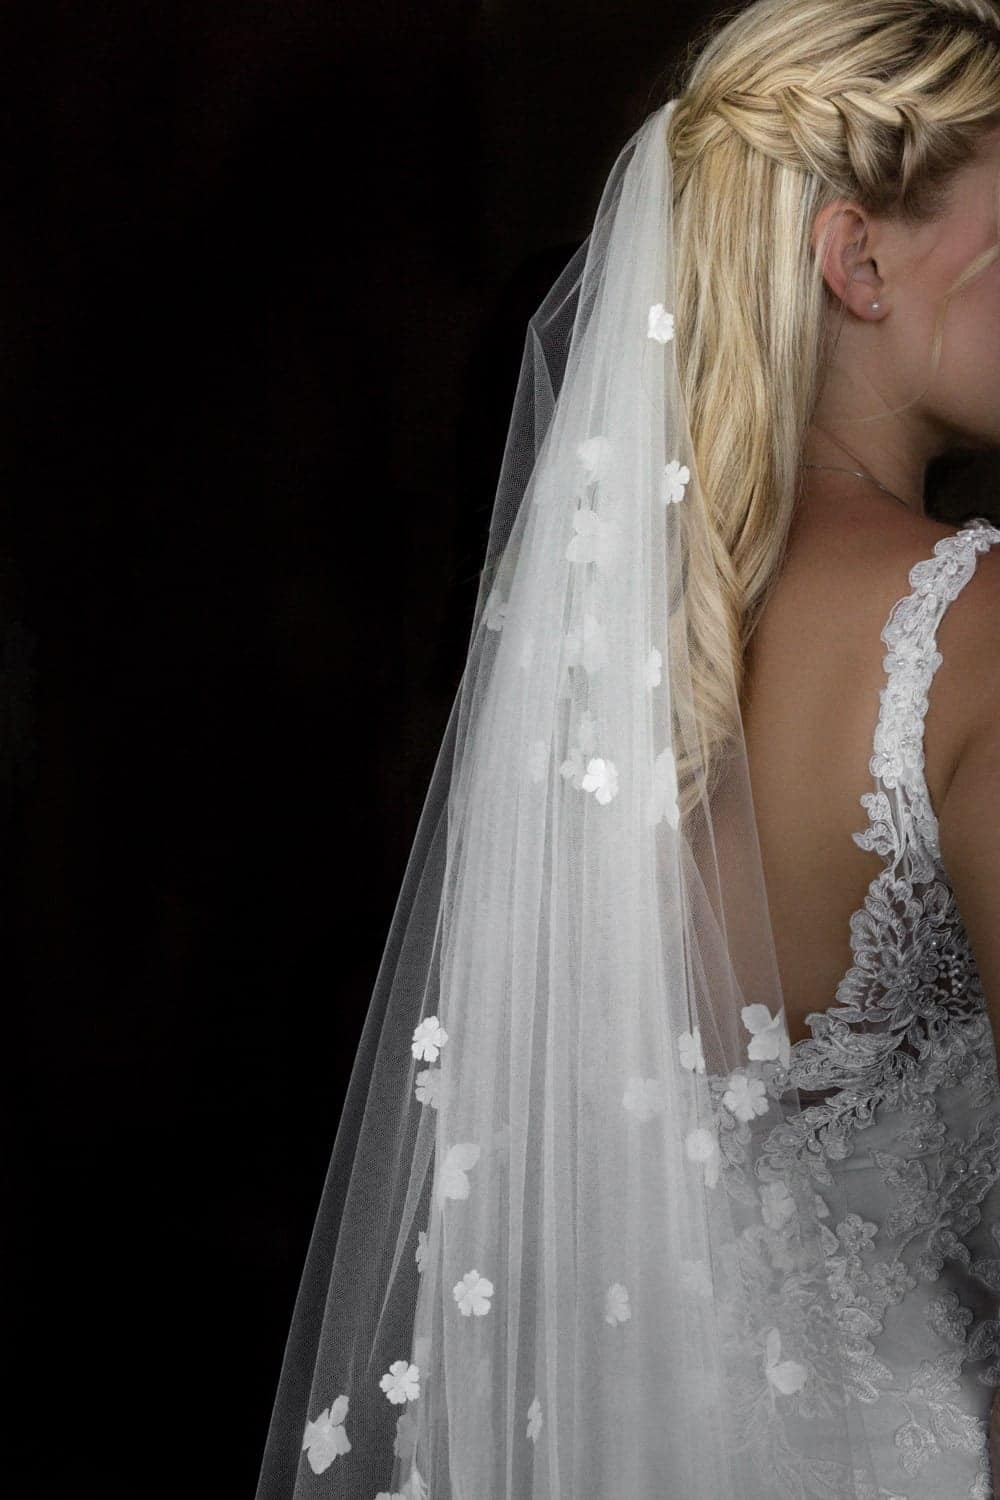 Bride with beautifully breaded blonde hair wearing white wedding veil.